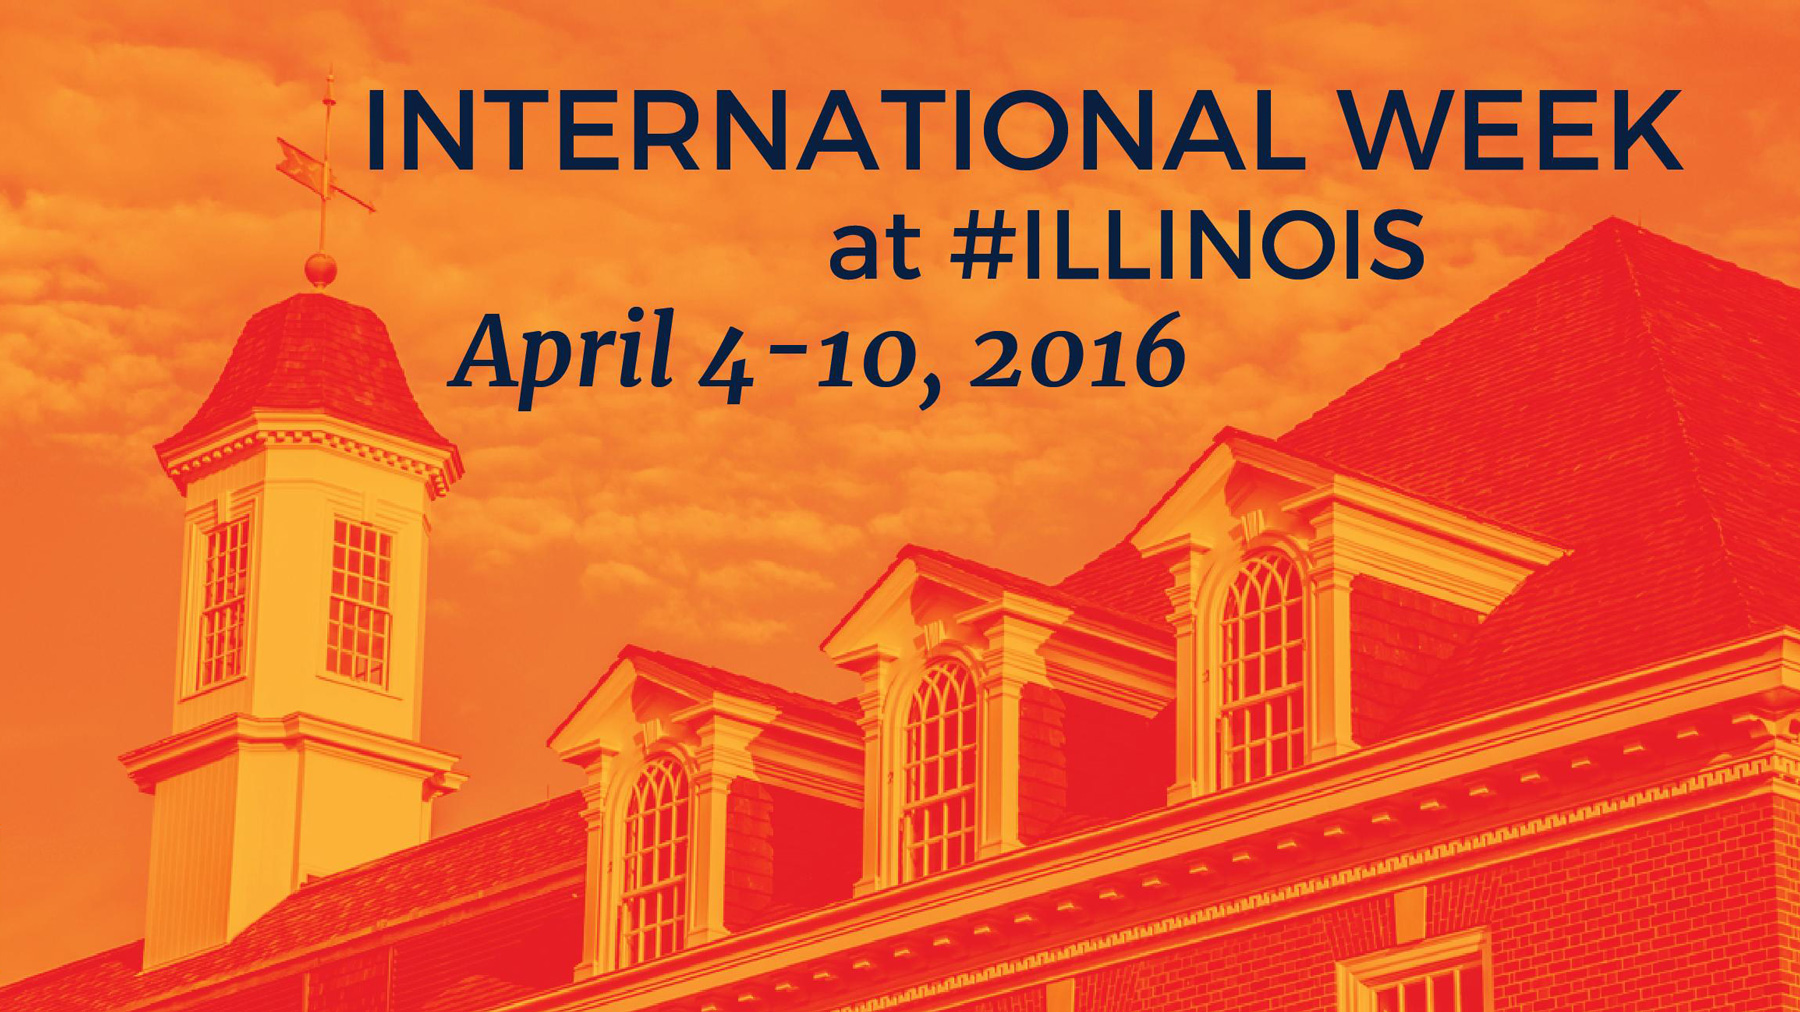 graphic illustration for International Week at Illinois